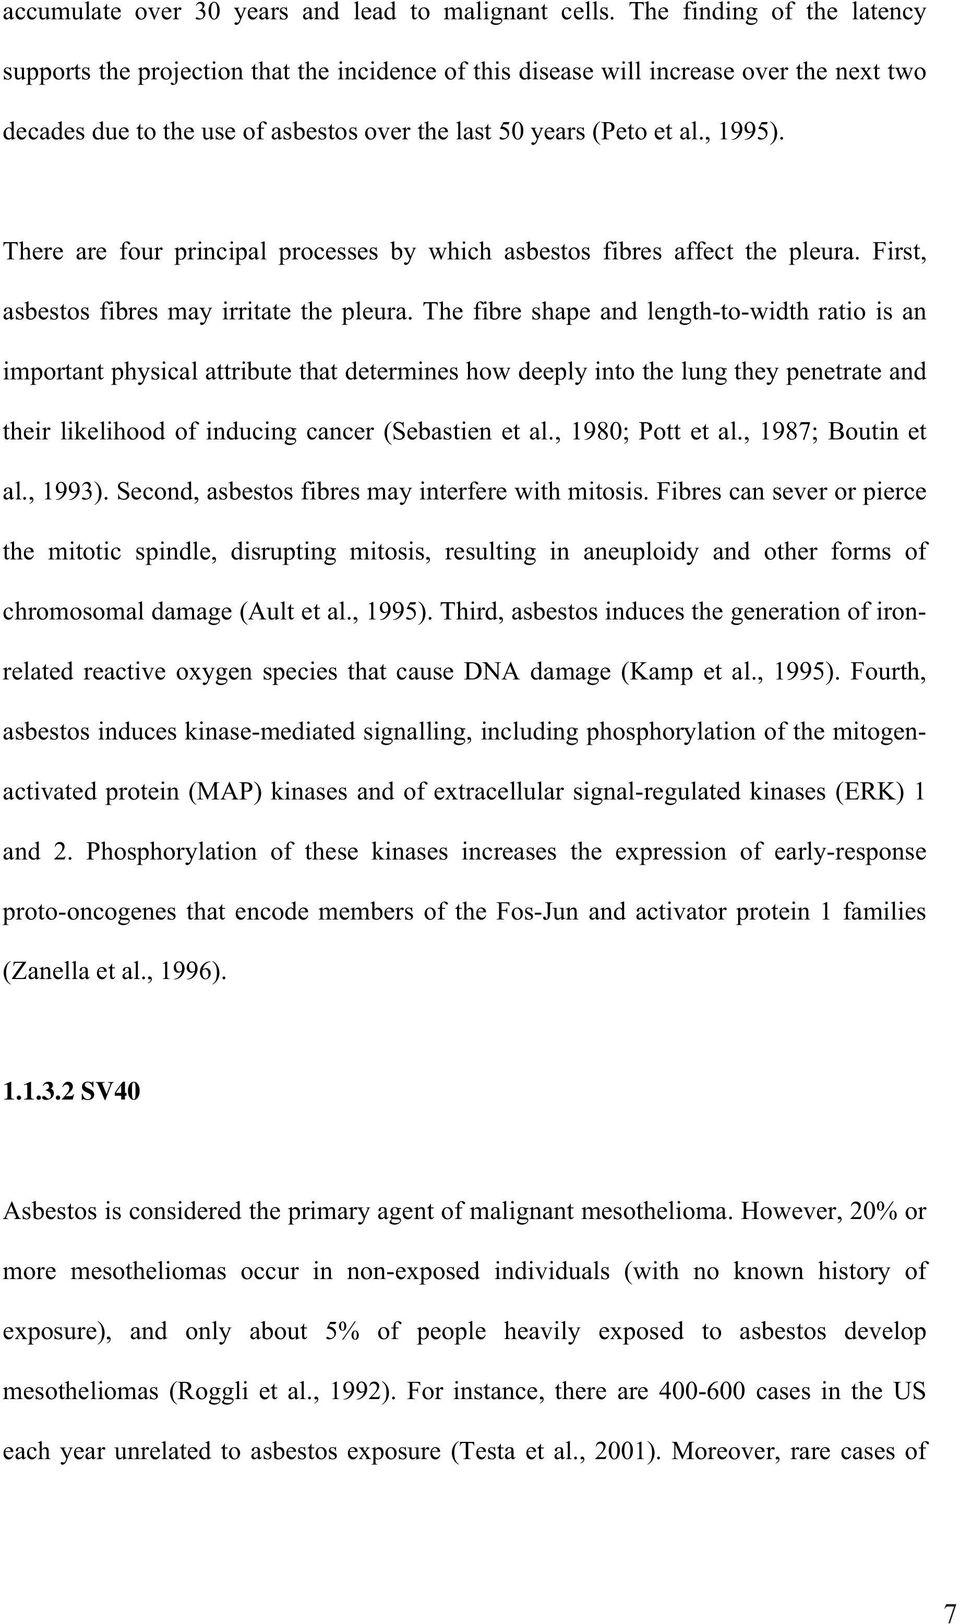 There are four principal processes by which asbestos fibres affect the pleura. First, asbestos fibres may irritate the pleura.